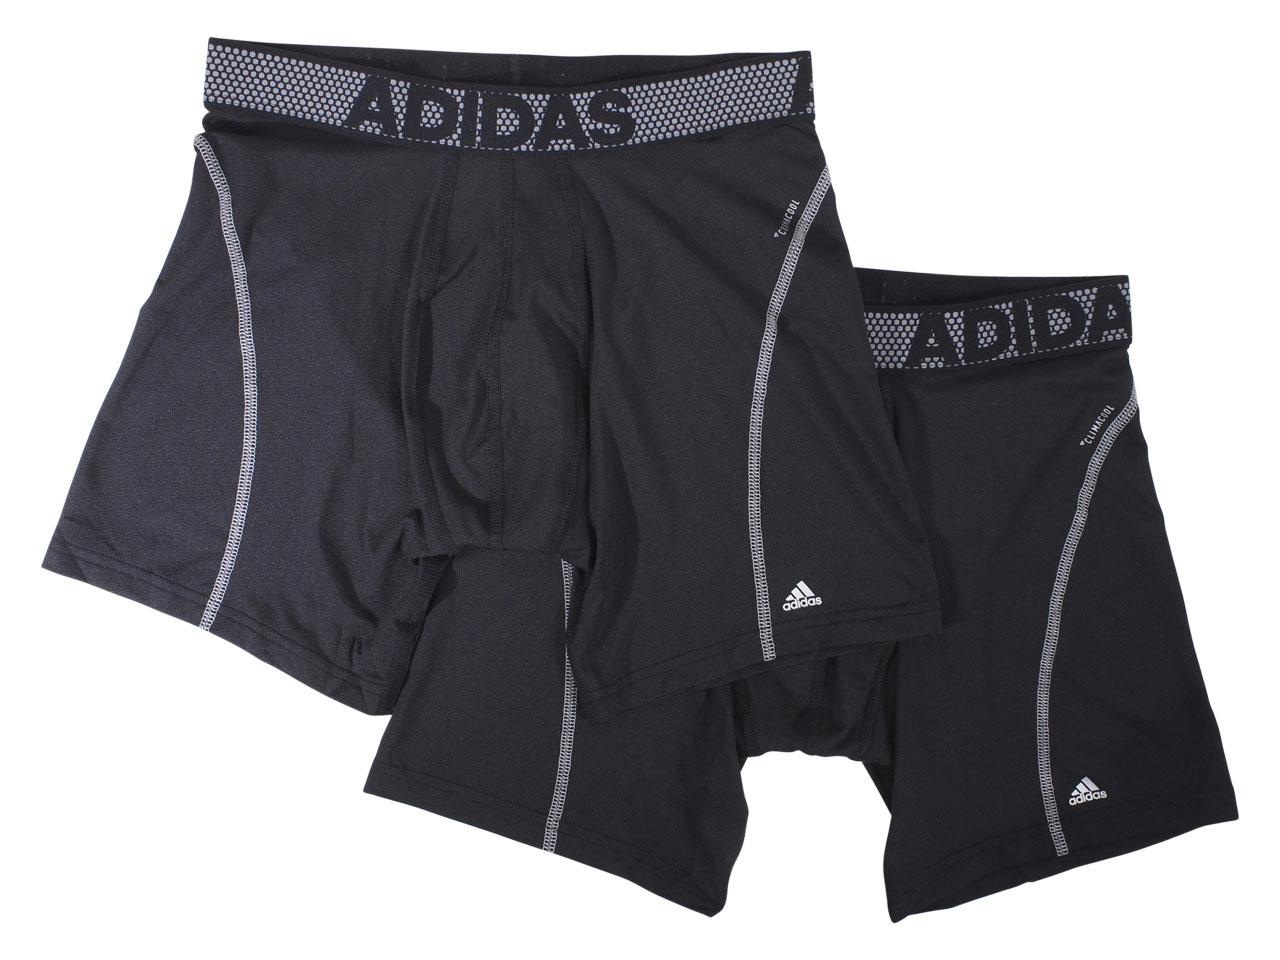 Adidas Men's 2-Pc Sport Performance Climacool Boxer Briefs Underwear